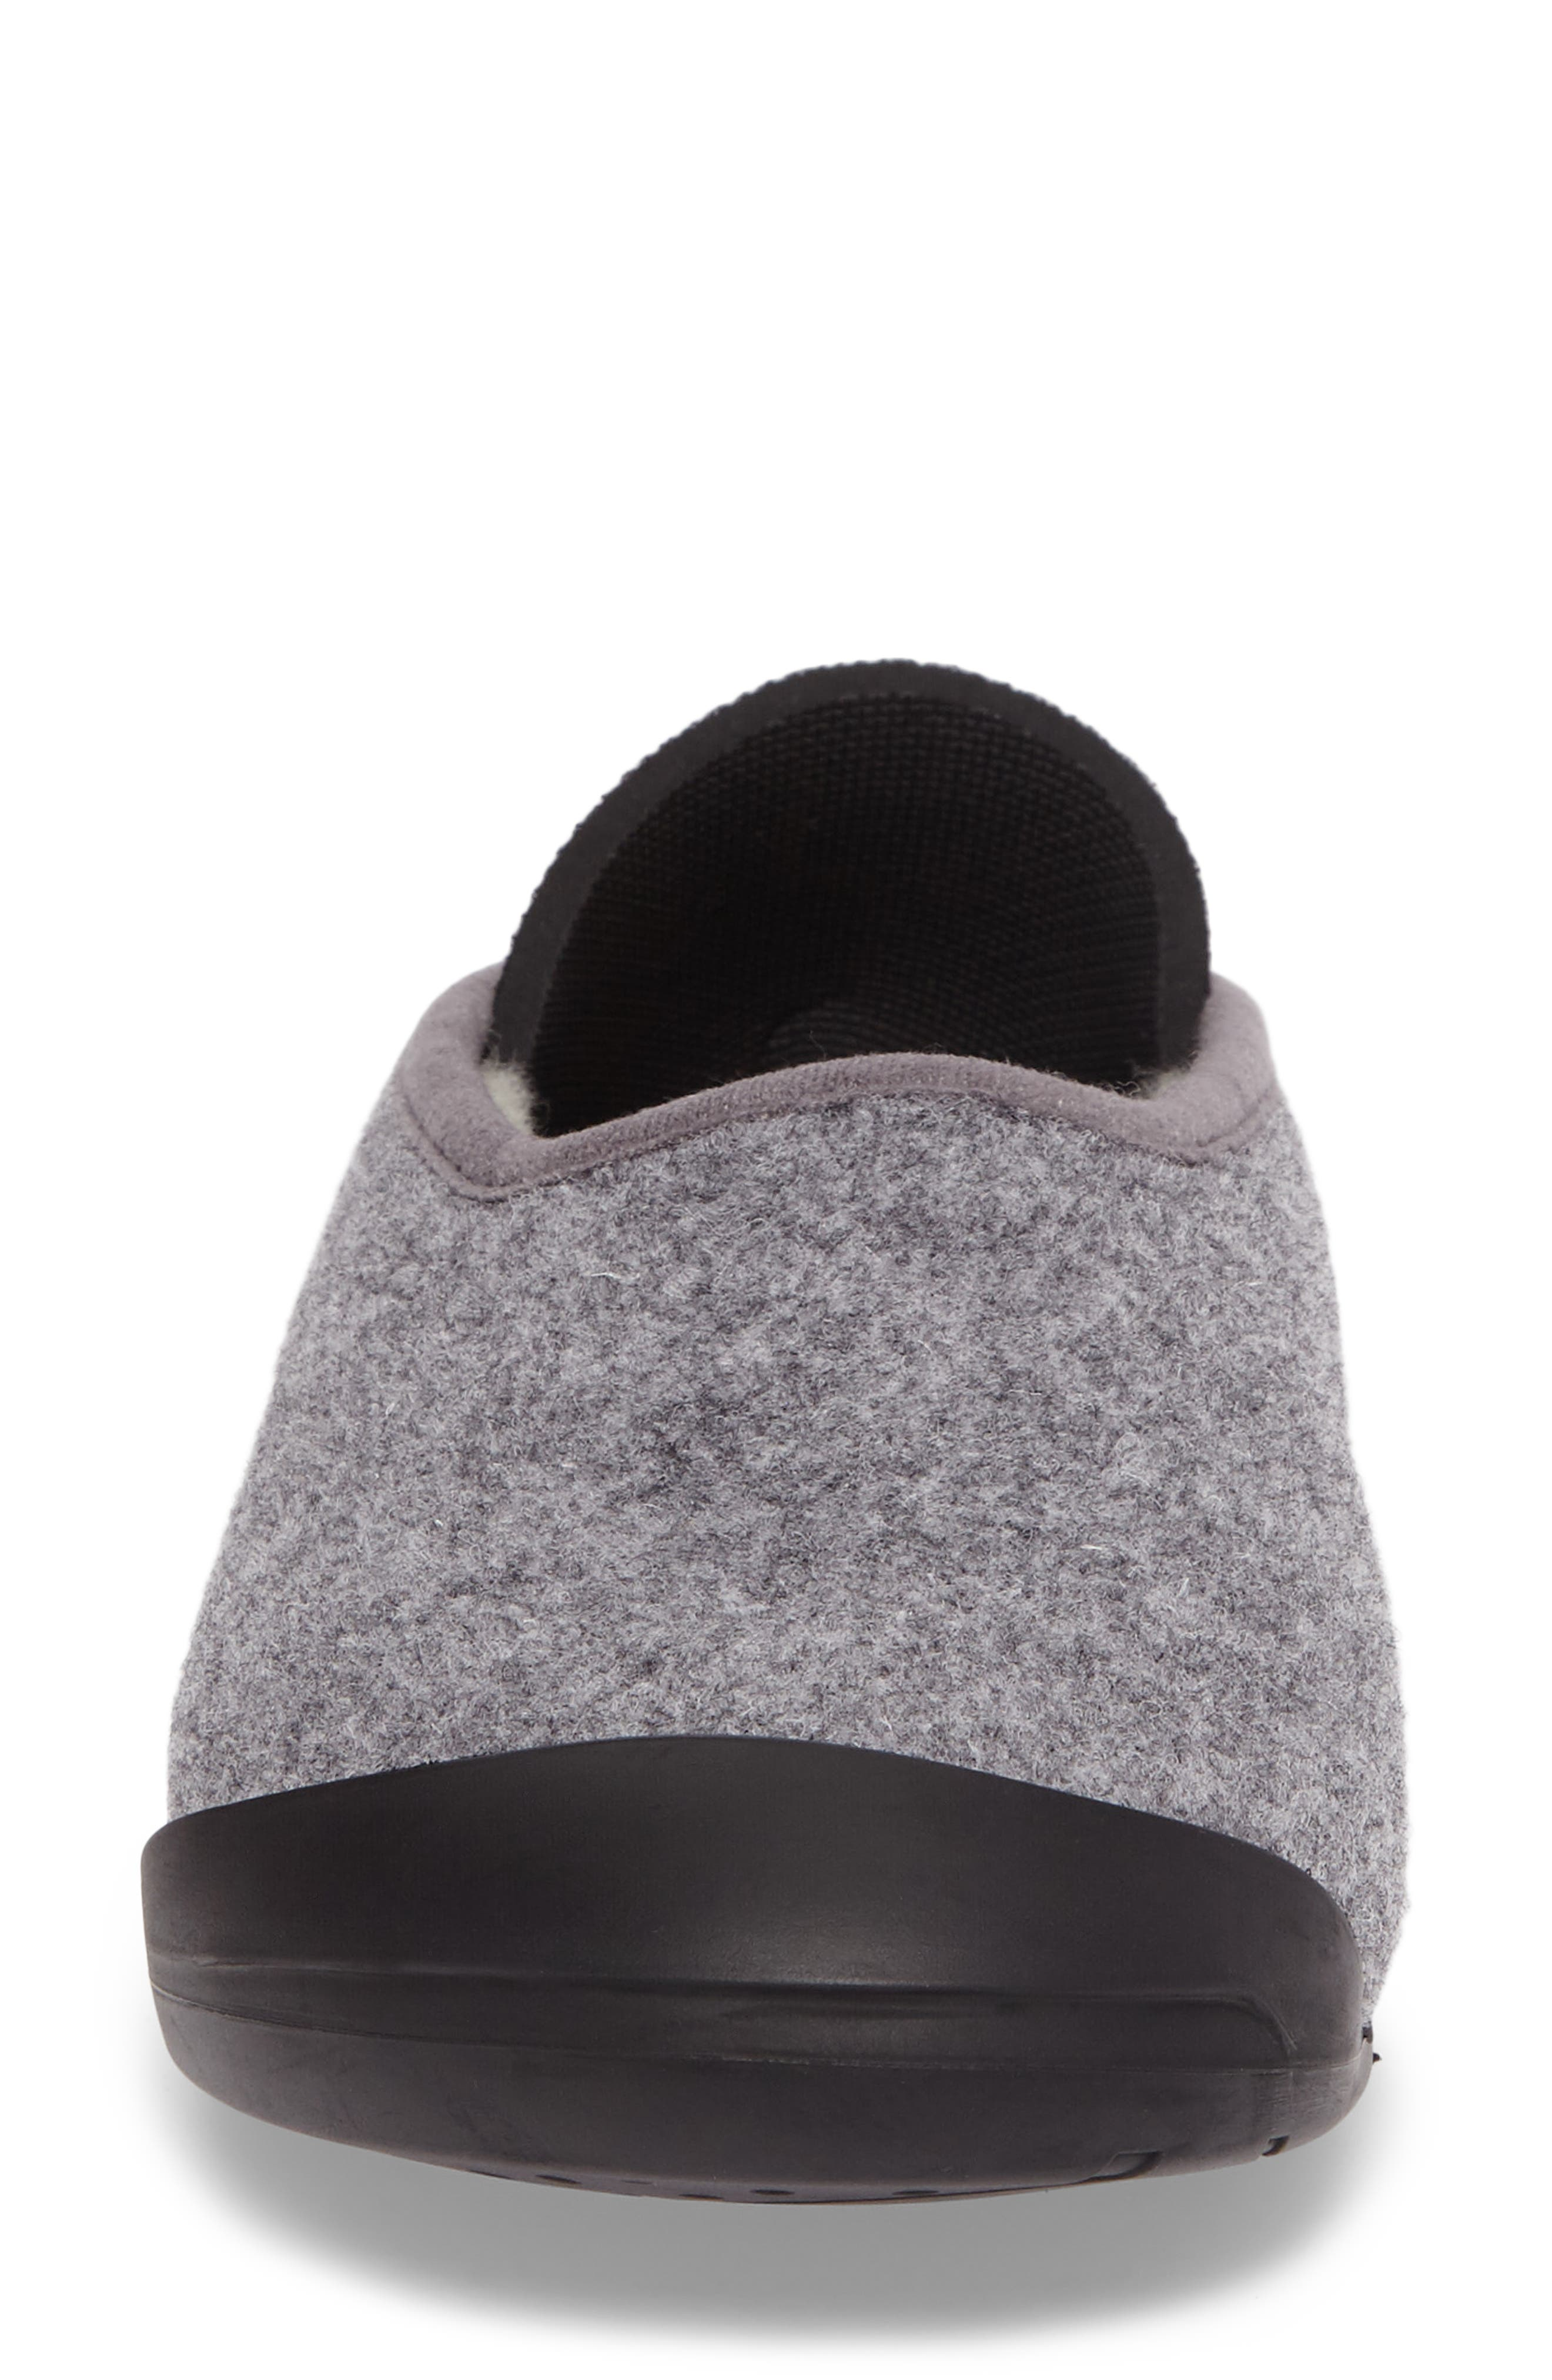 Classic Convertible Indoor/Outdoor Slipper,                             Alternate thumbnail 5, color,                             020